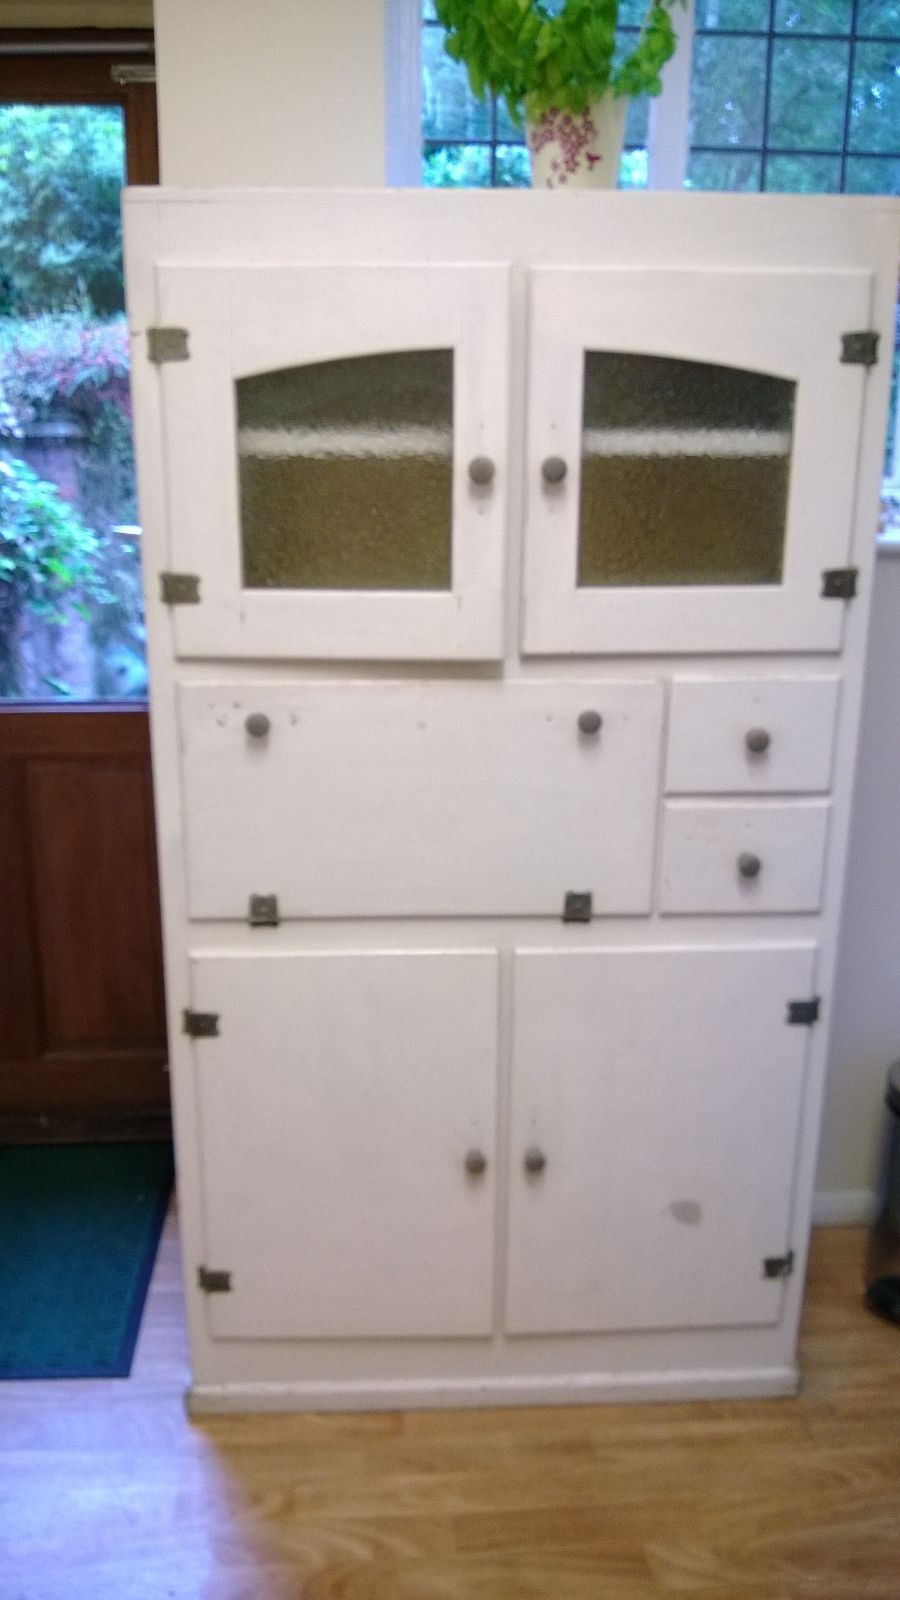 Retro 1955 Kitchenette Unit Freestanding Ebay Kitchen Storage